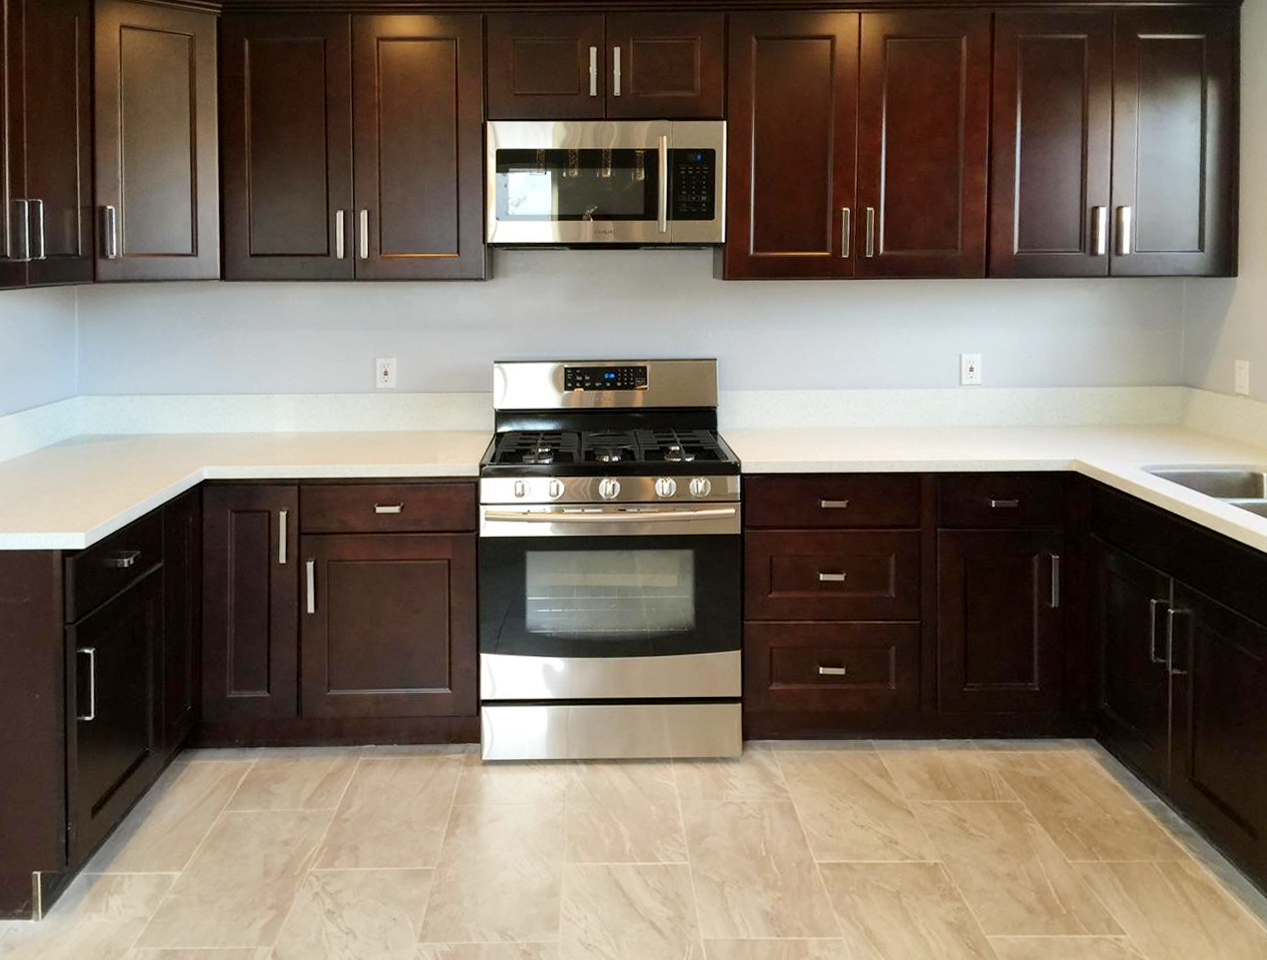 10 off california espresso kitchen cabinet kitchen cabinets paint job residential oxnard california